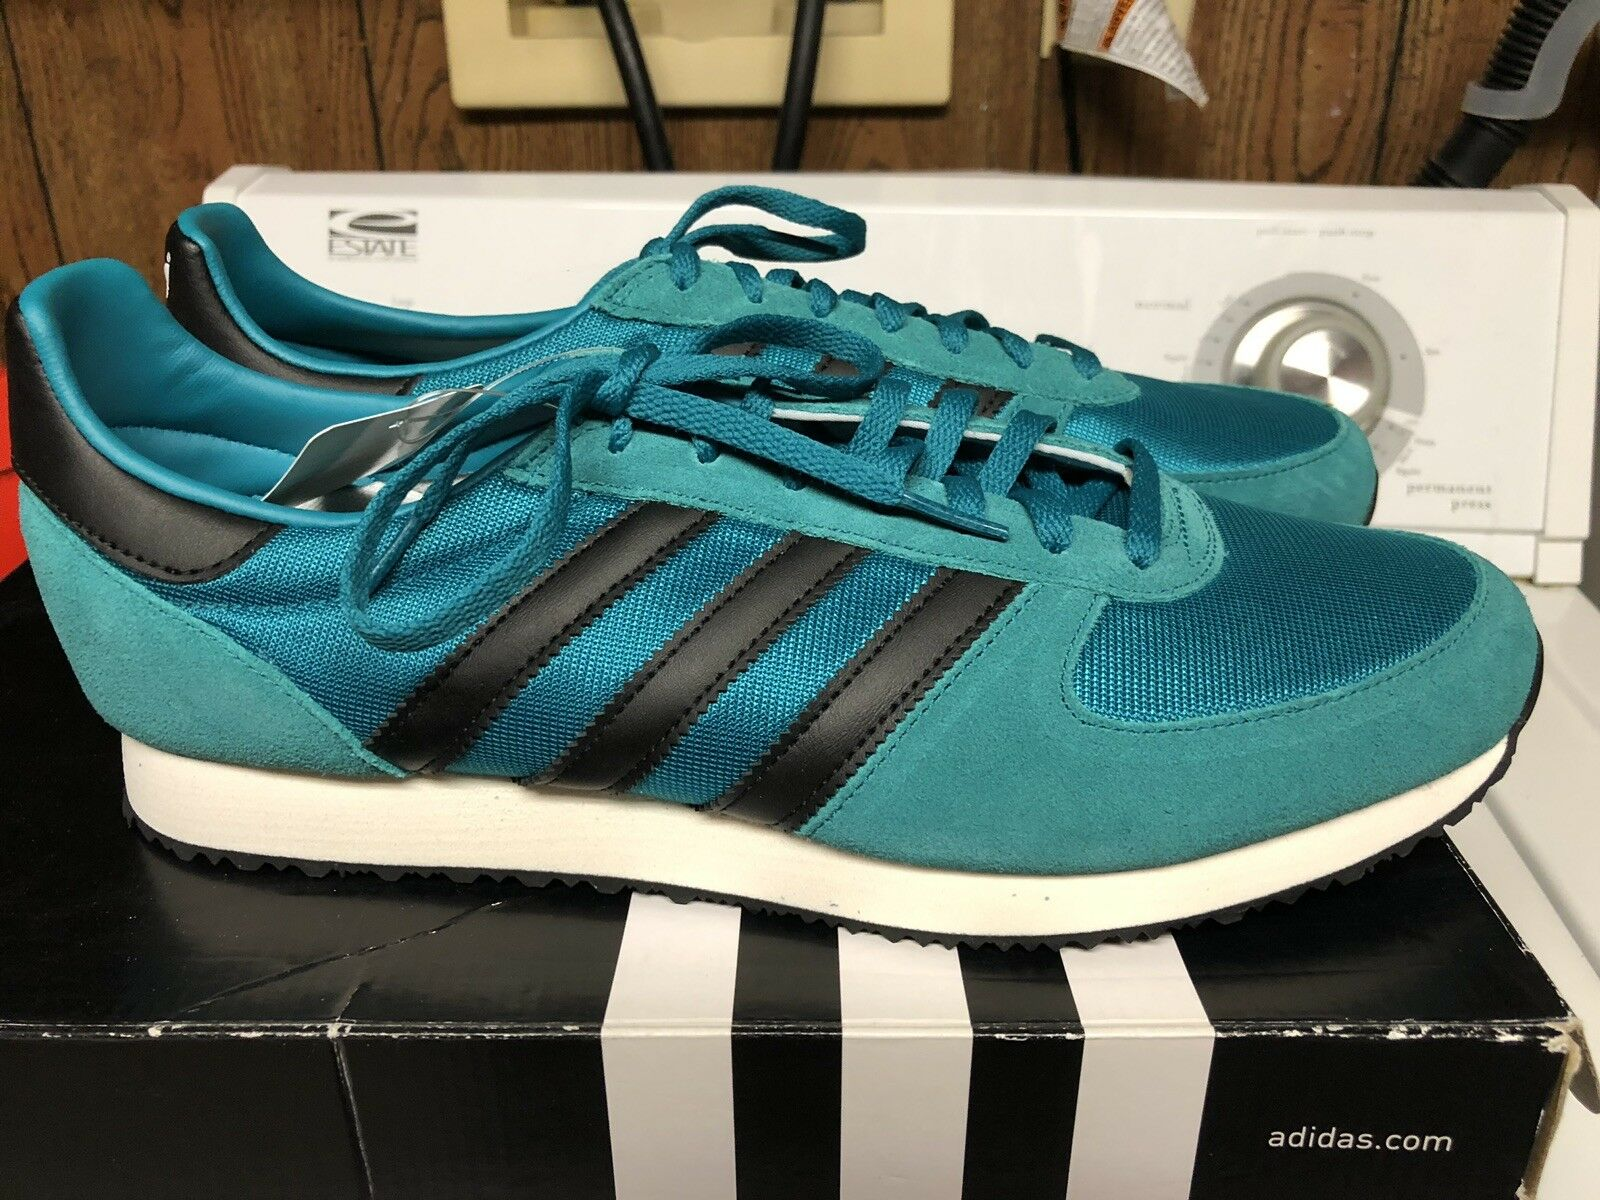 Adidas Men's Originals Classic Running shoes  Size 10D